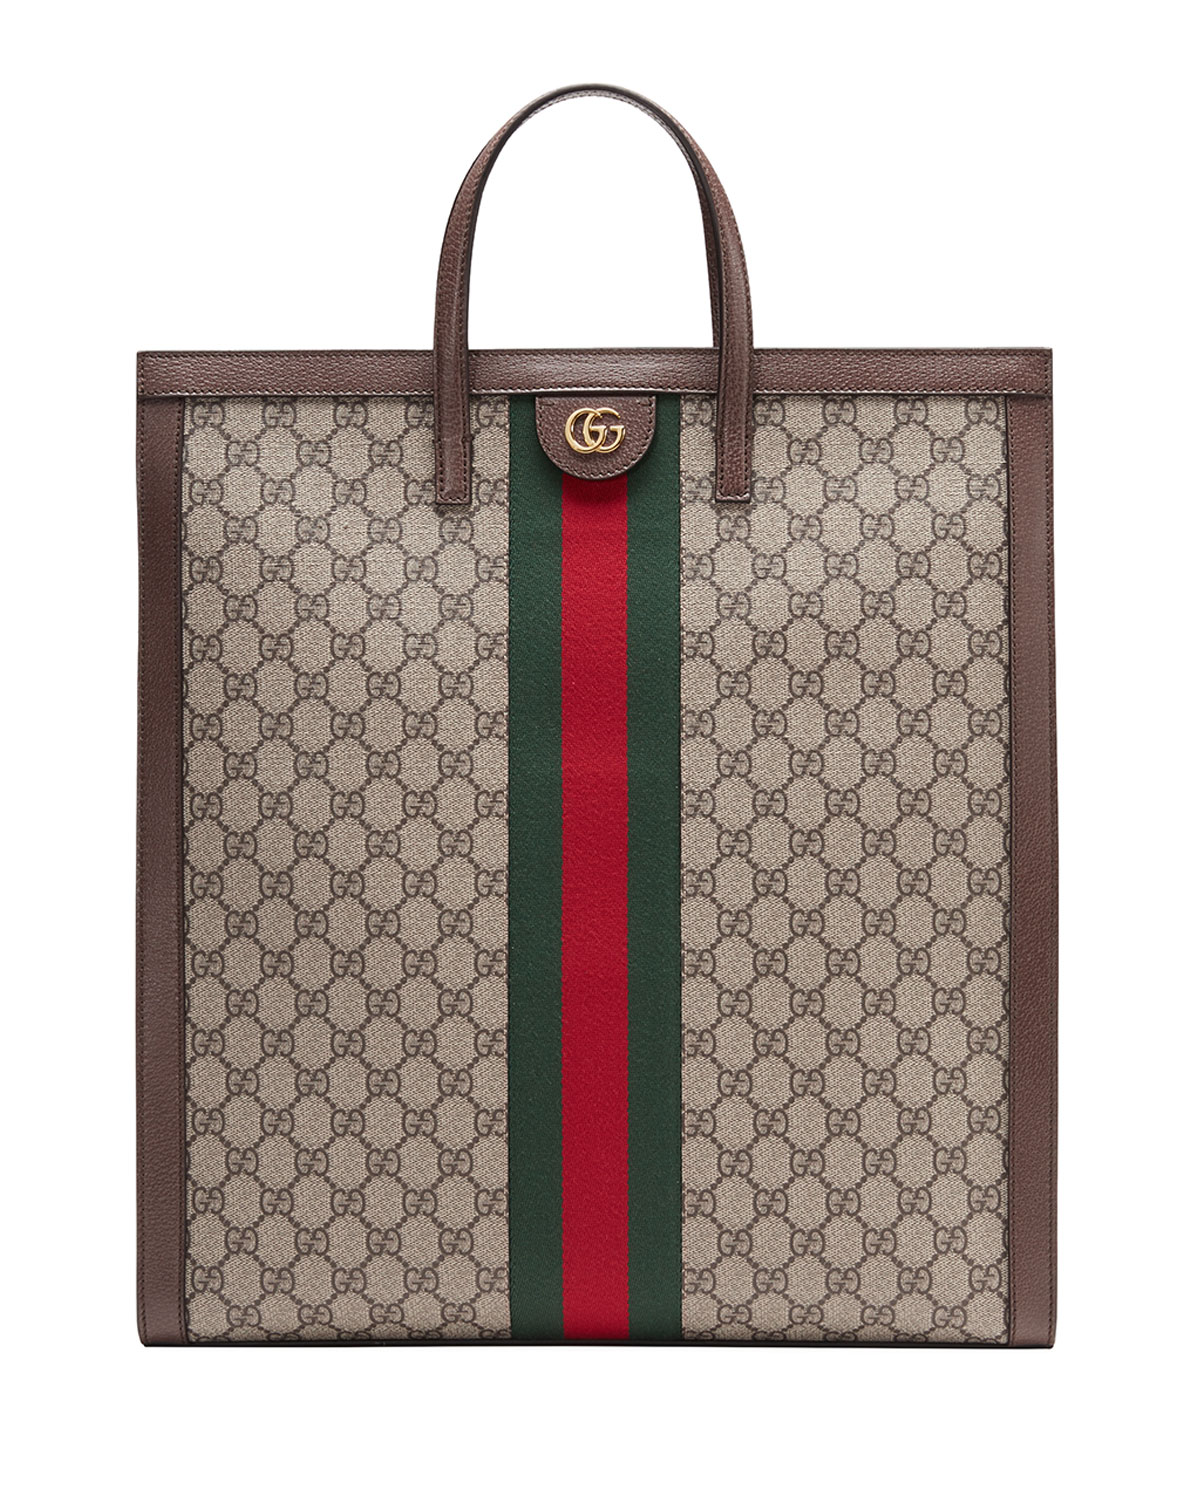 1331a9dc2d1d Gucci Ophidia GG Supreme Canvas Tote Bag